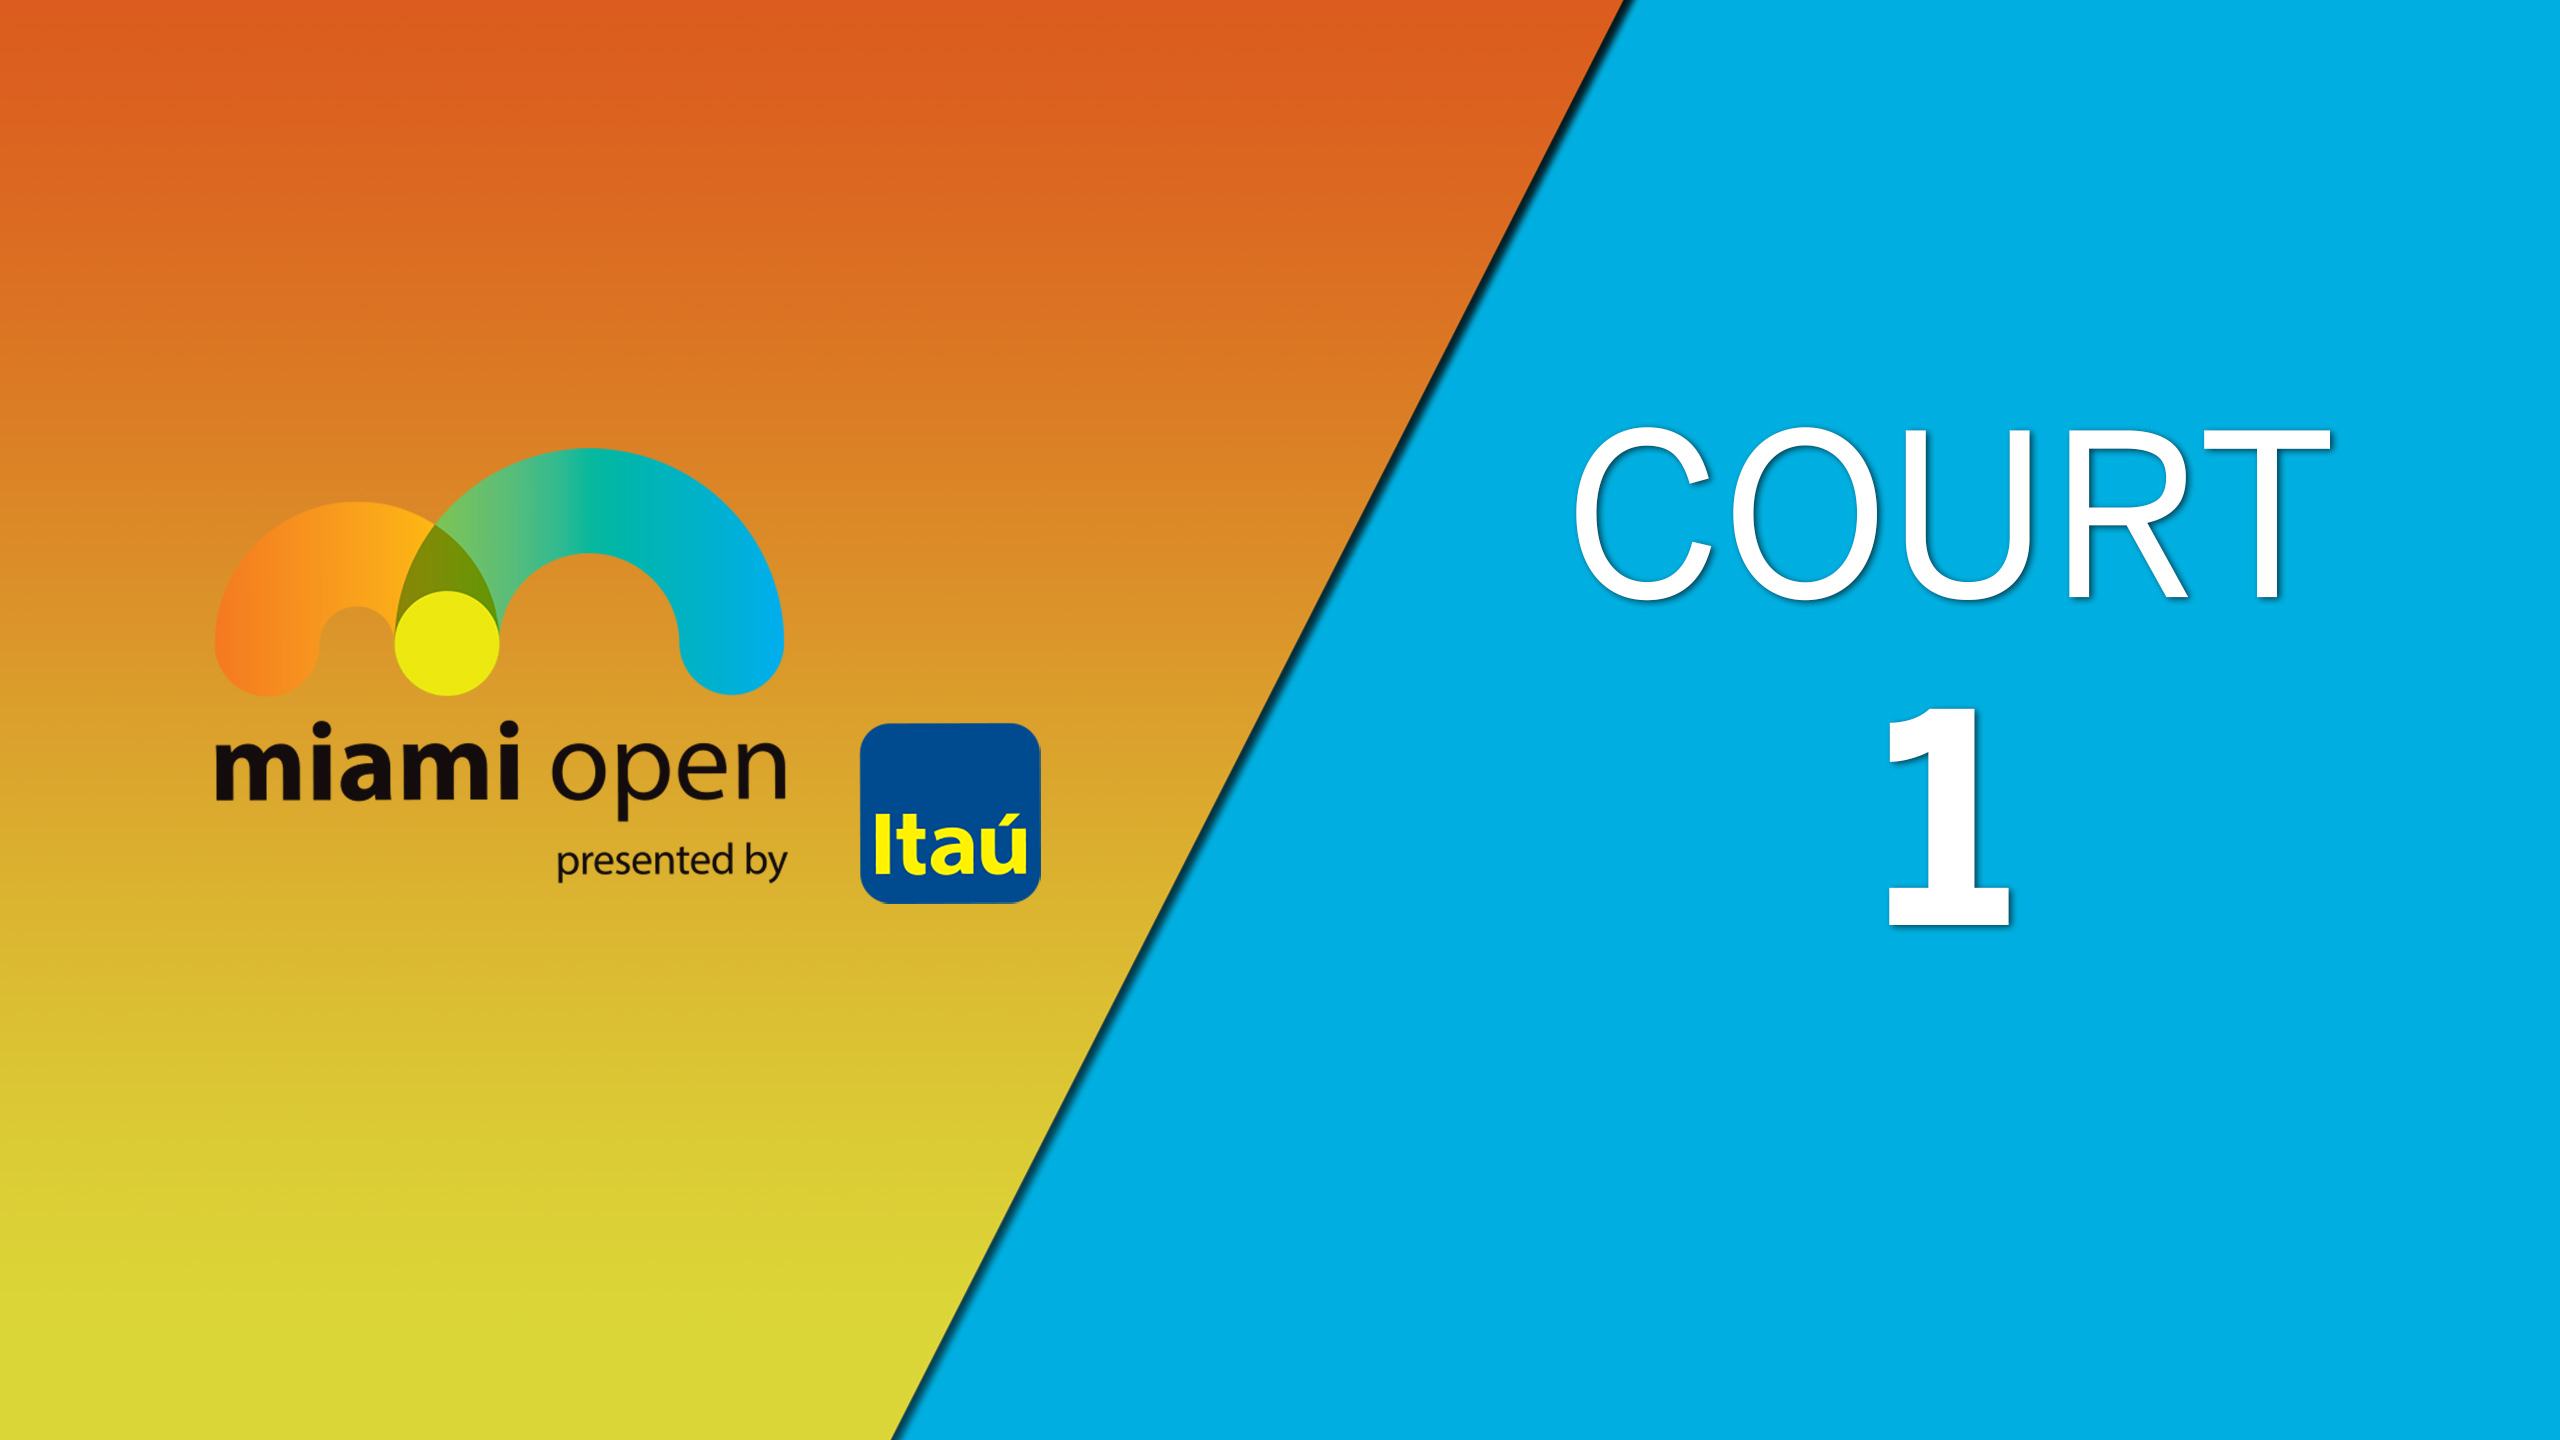 ATP: Court 1 - Miami Open